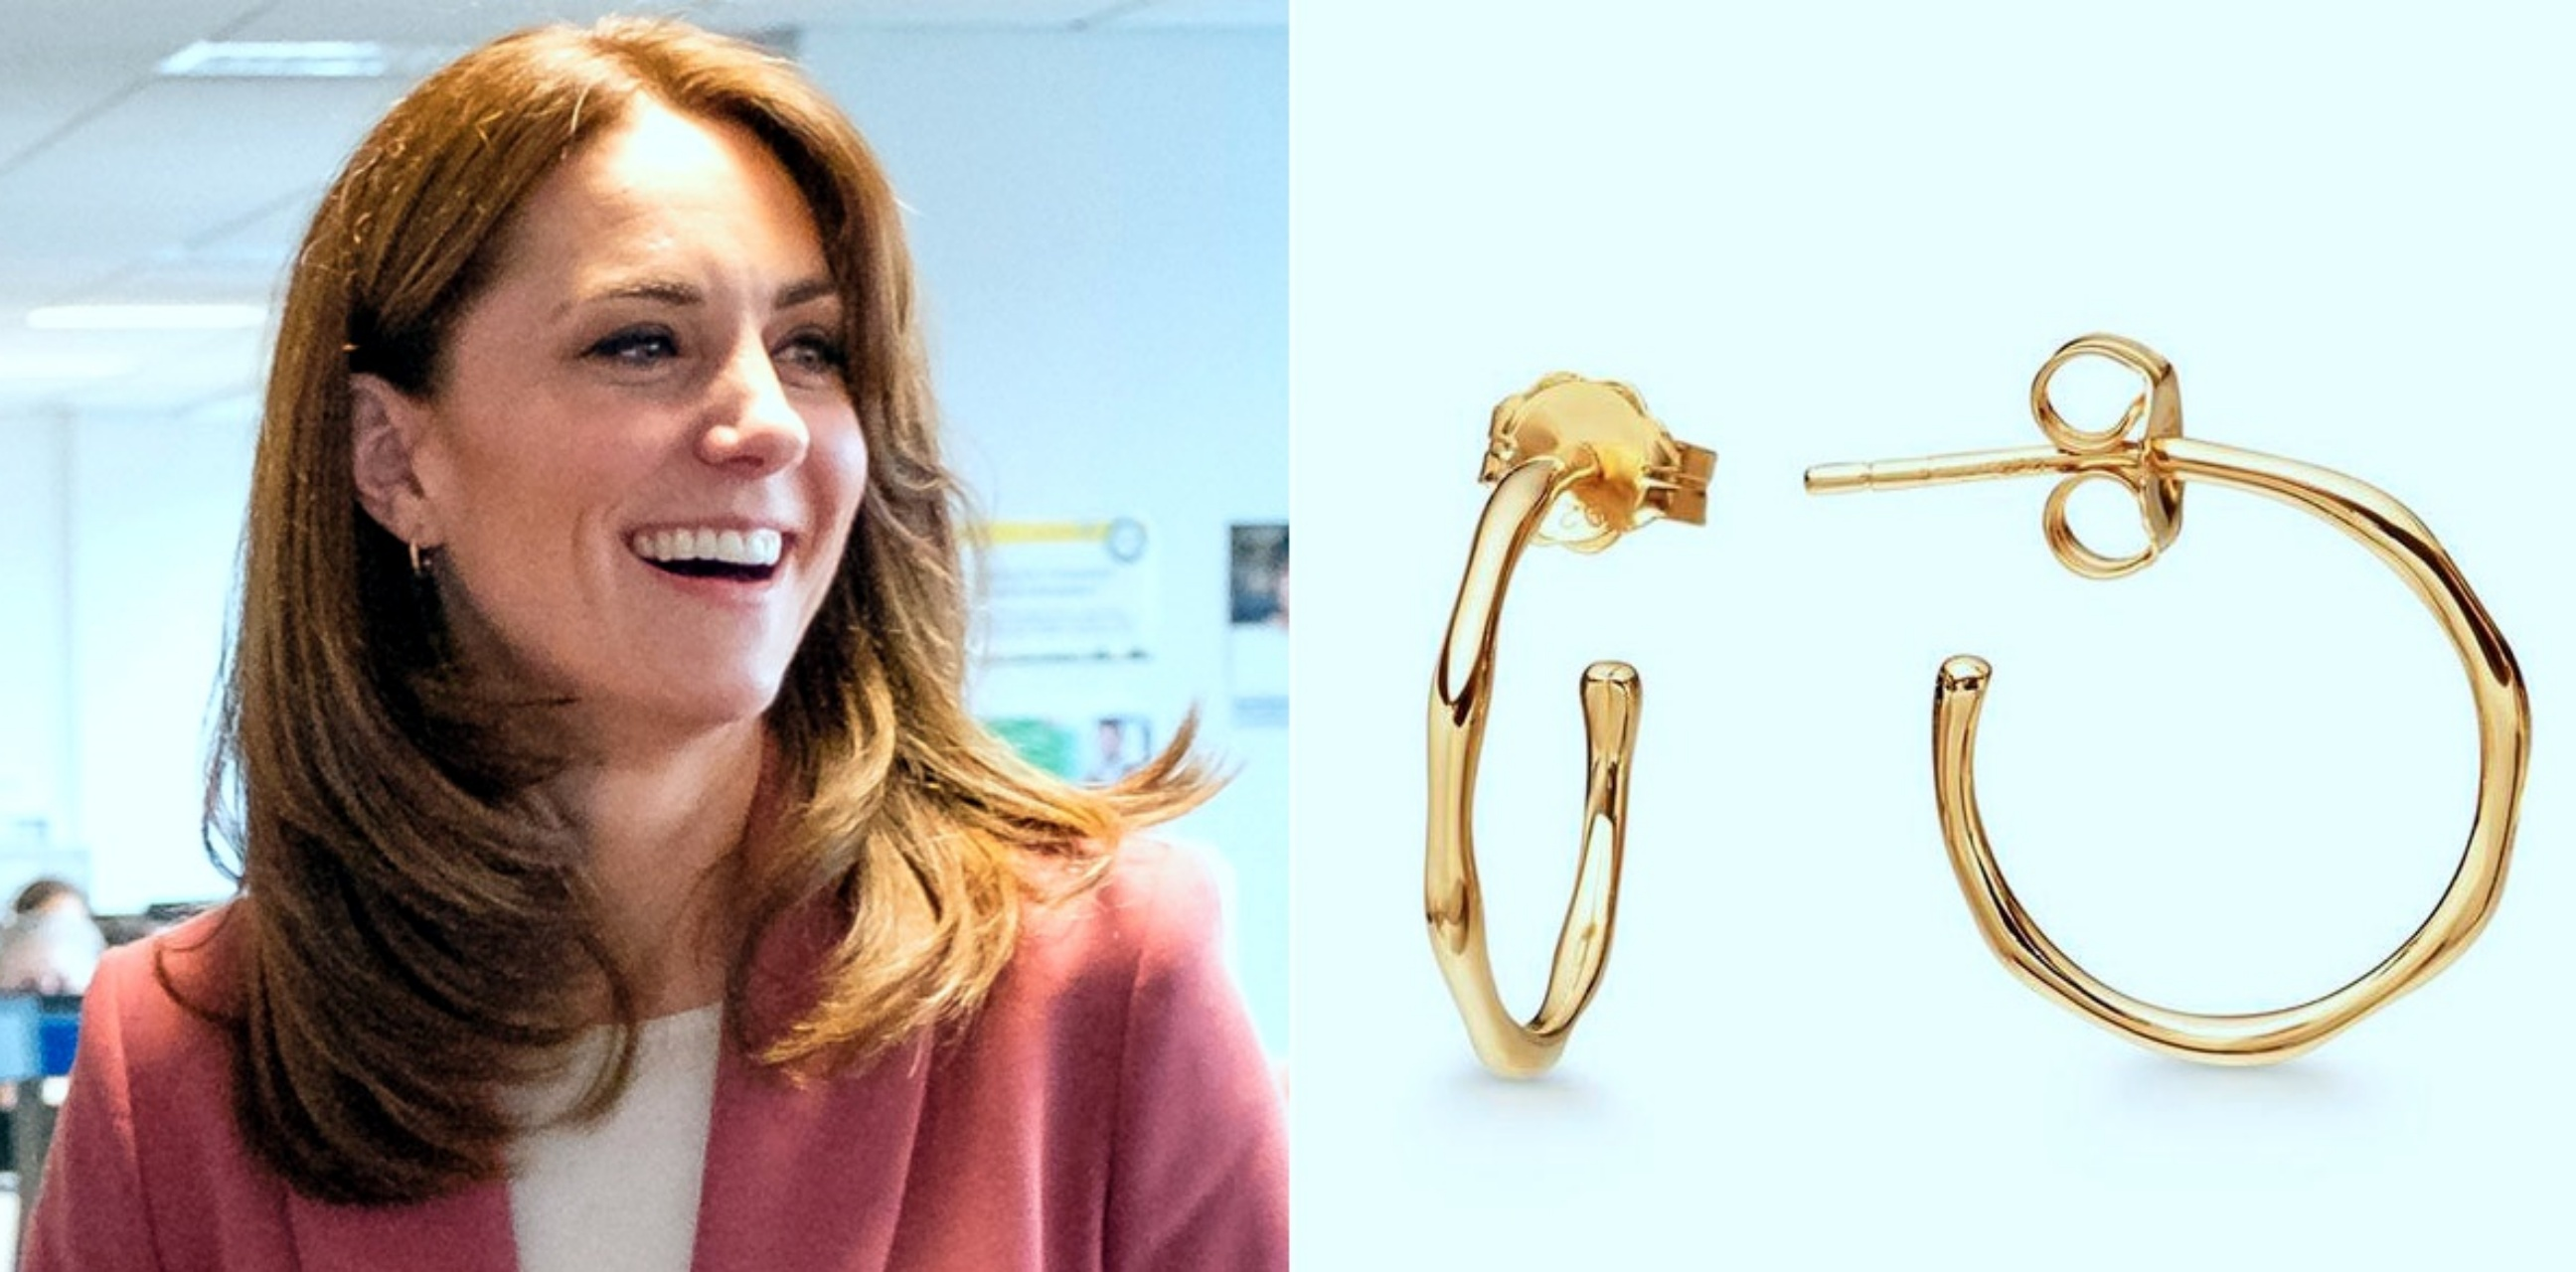 Kunjungi pusat medis Covid-19, anting Kate Middleton curi perhatian